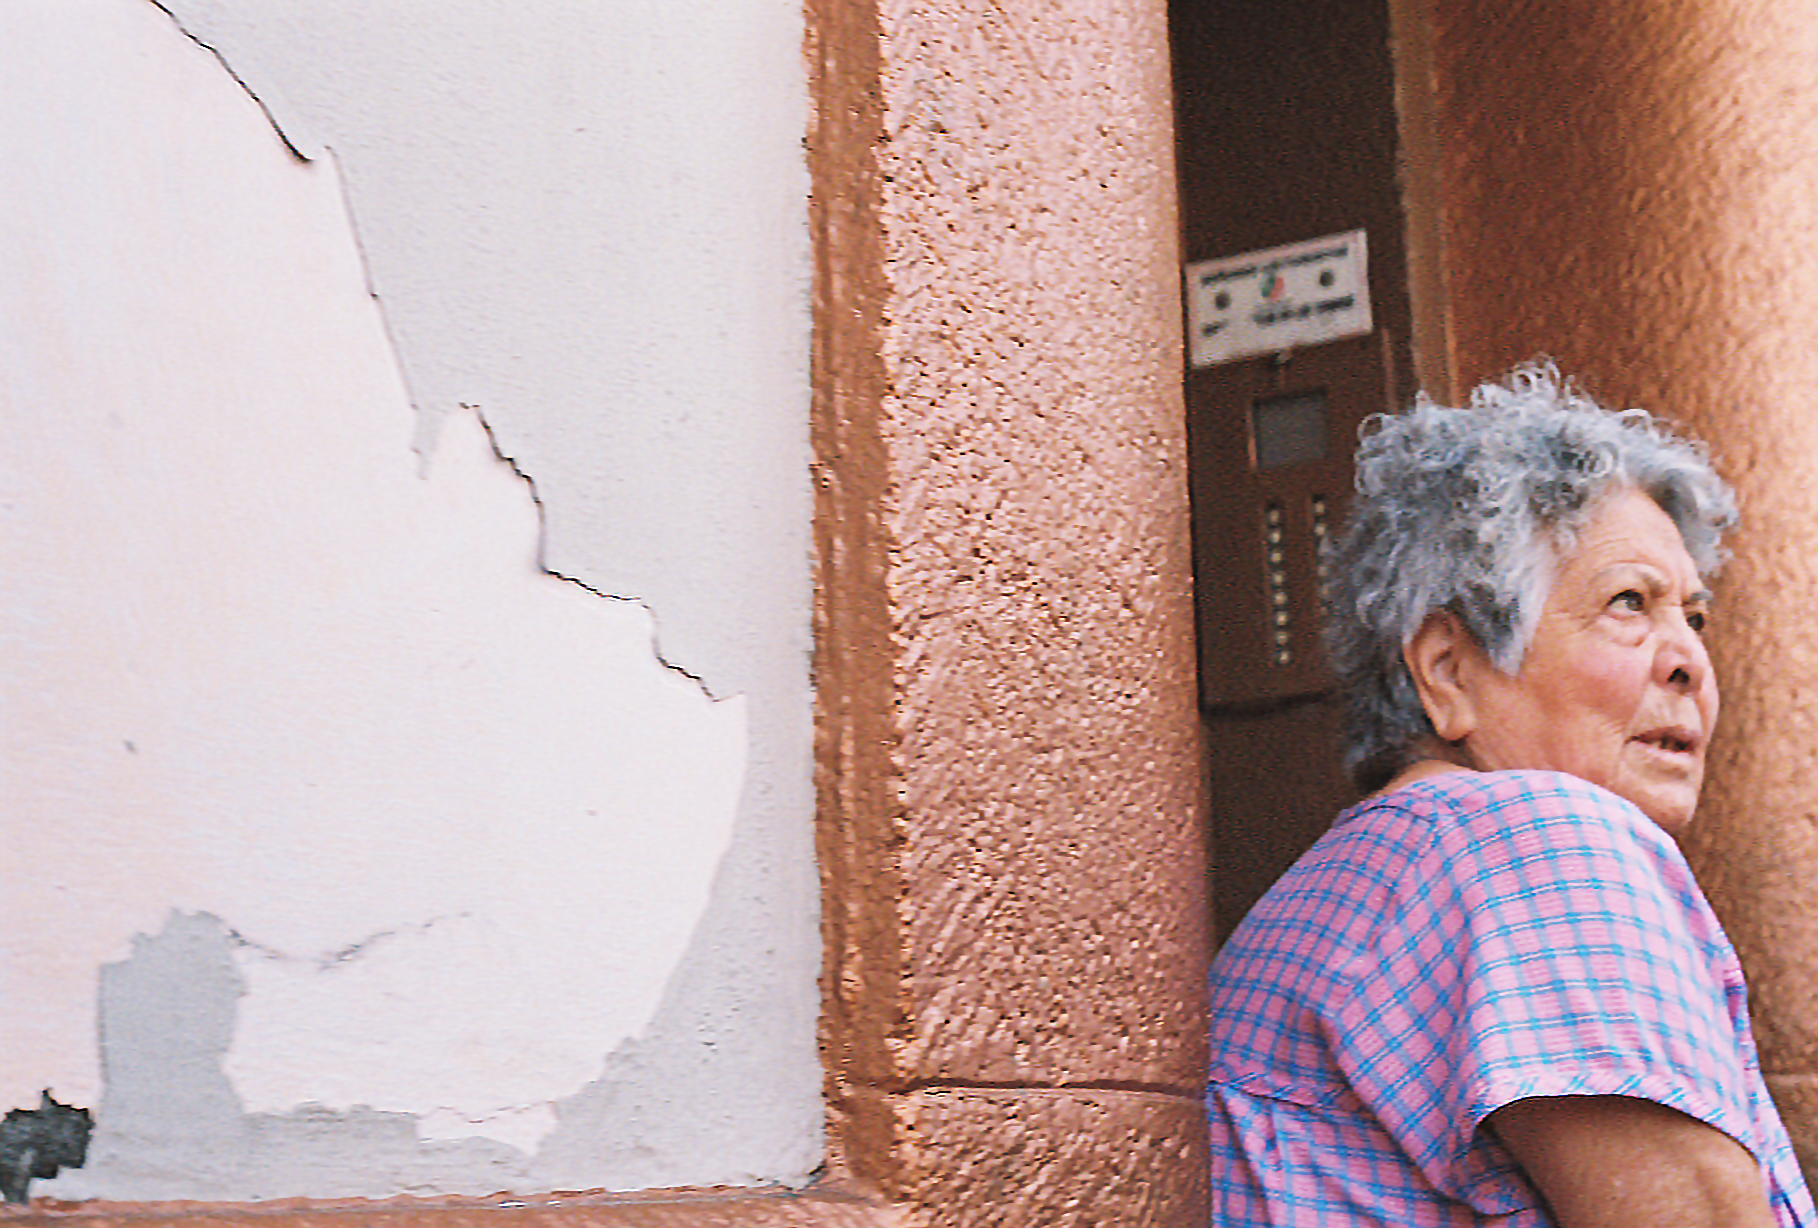 An old lady outside standing in the doorway of an apartment. The paint is peeling off the walls. 35mm film shot by Nick Barry in Mexico City